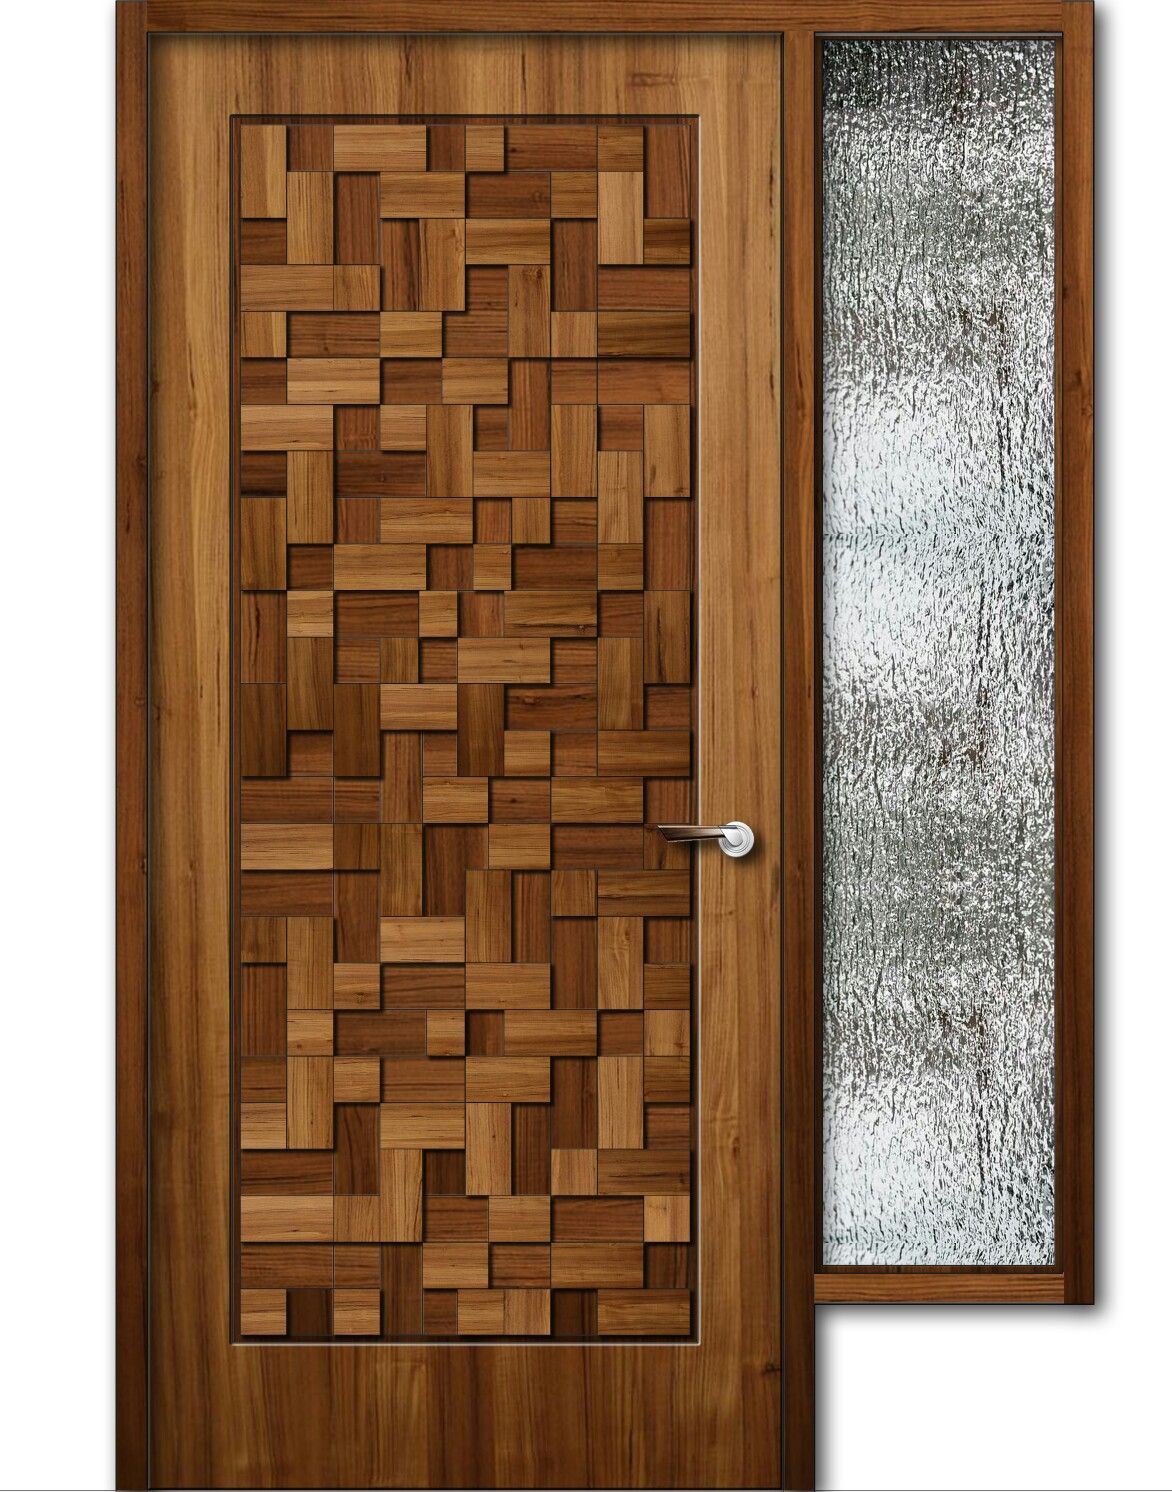 Teak wood finish wooden door with window 8feet height for Window design wood